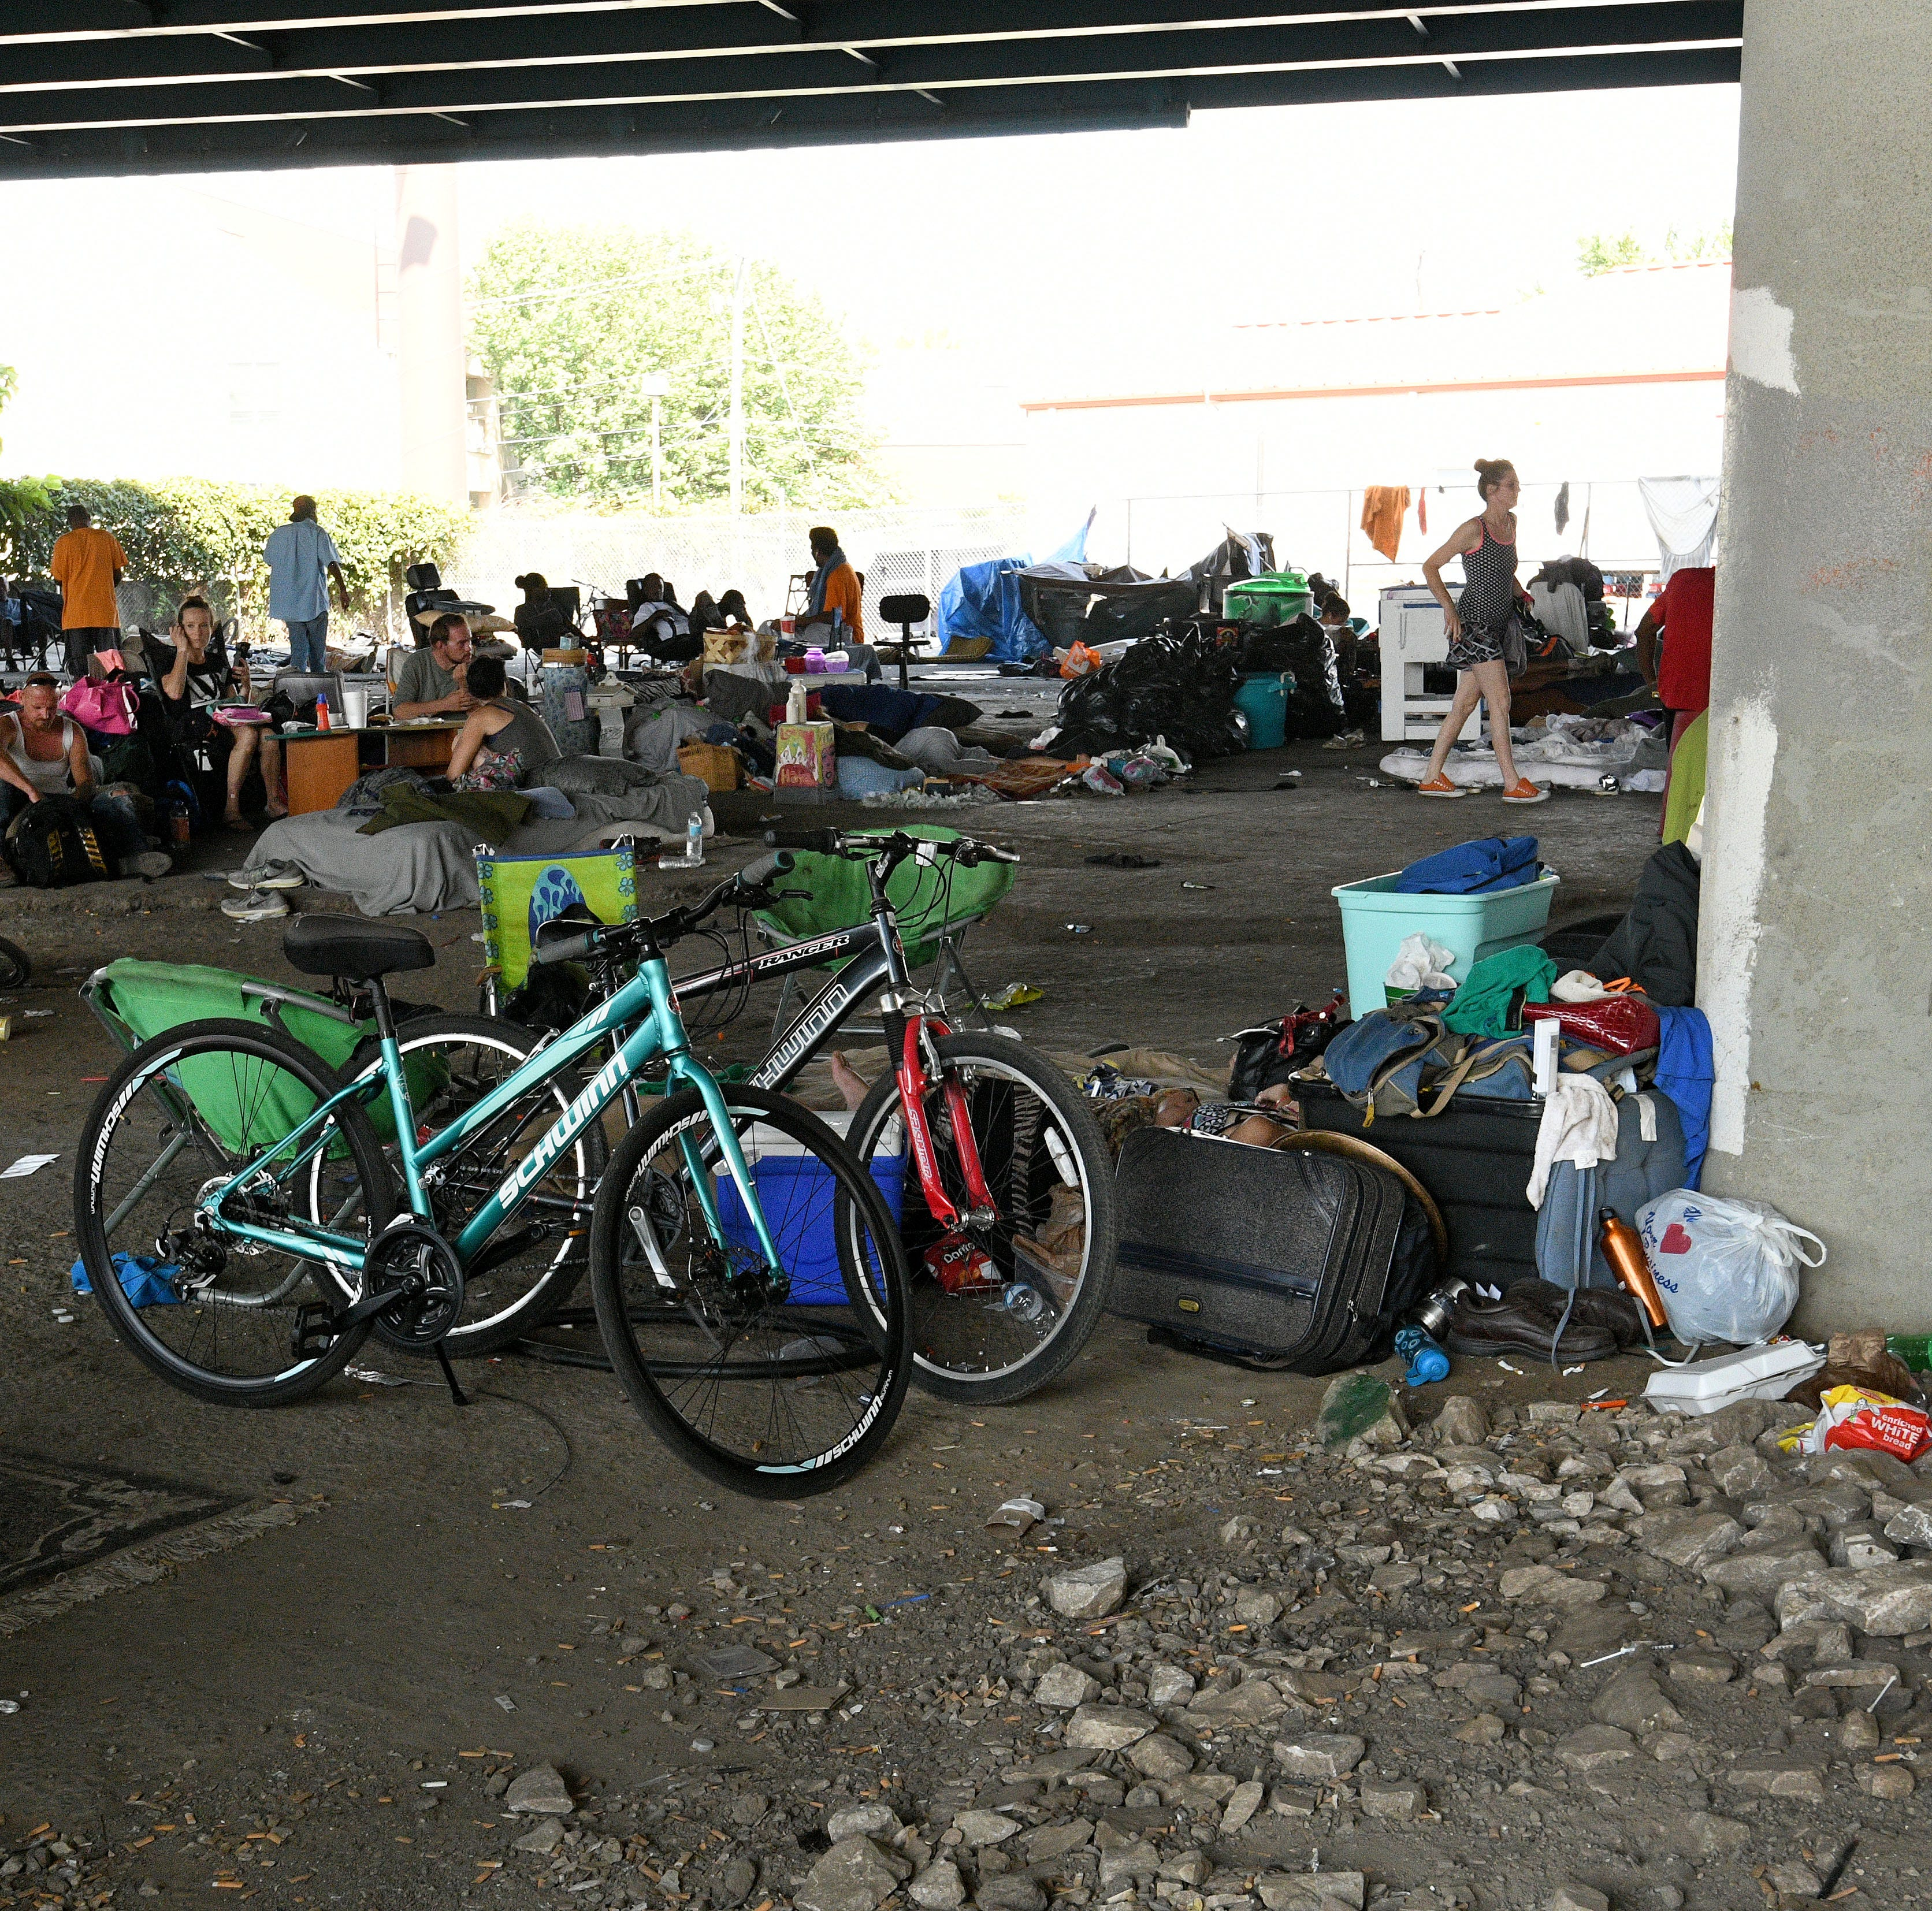 'Under the bridge': City addressing homeless camp by turning space to secured day center — with mixed reactions